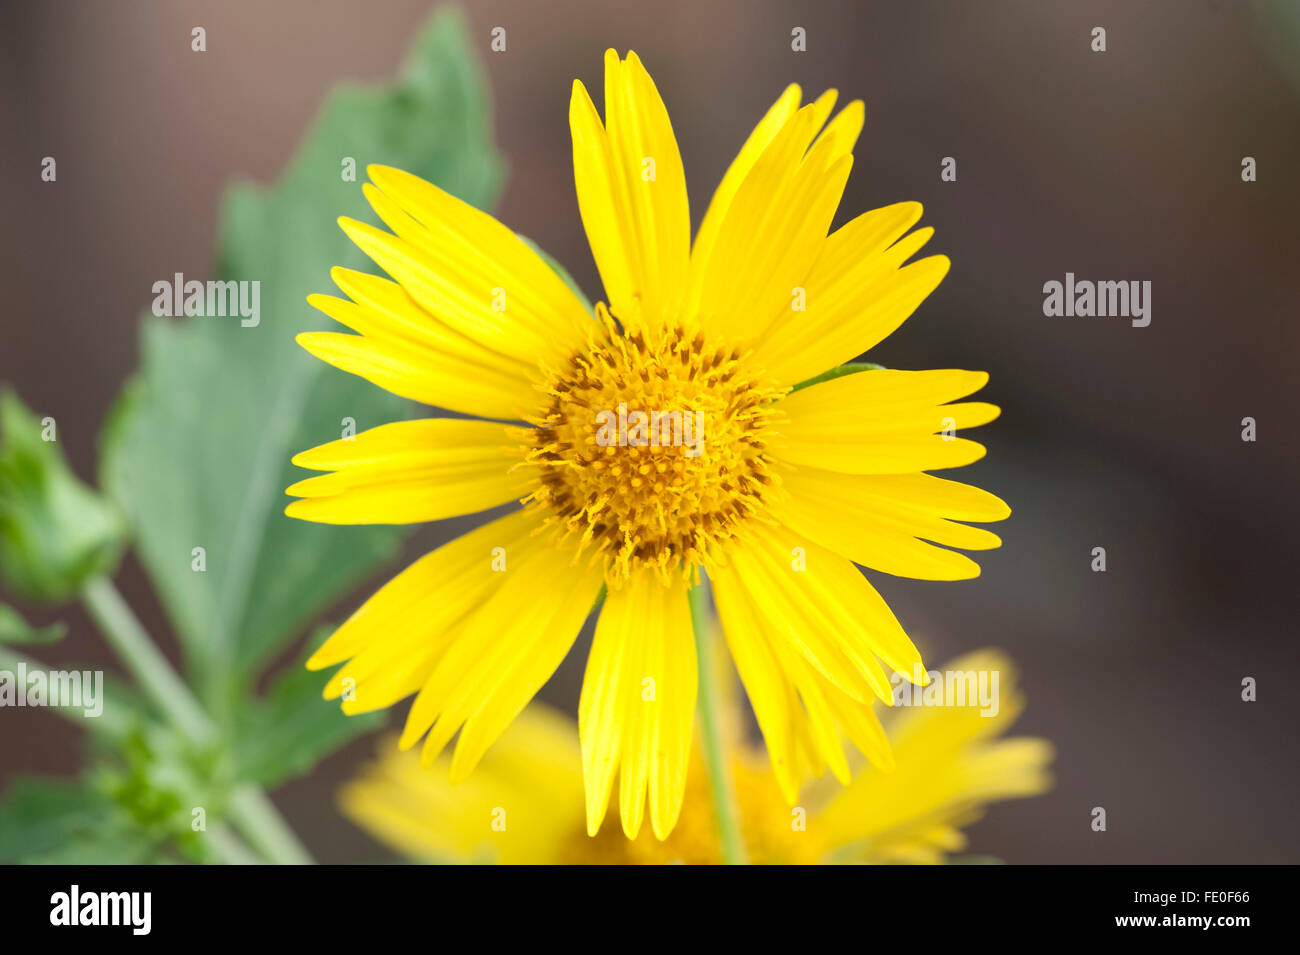 Mediterranean Wild Yellow Flower Stock Photos Mediterranean Wild